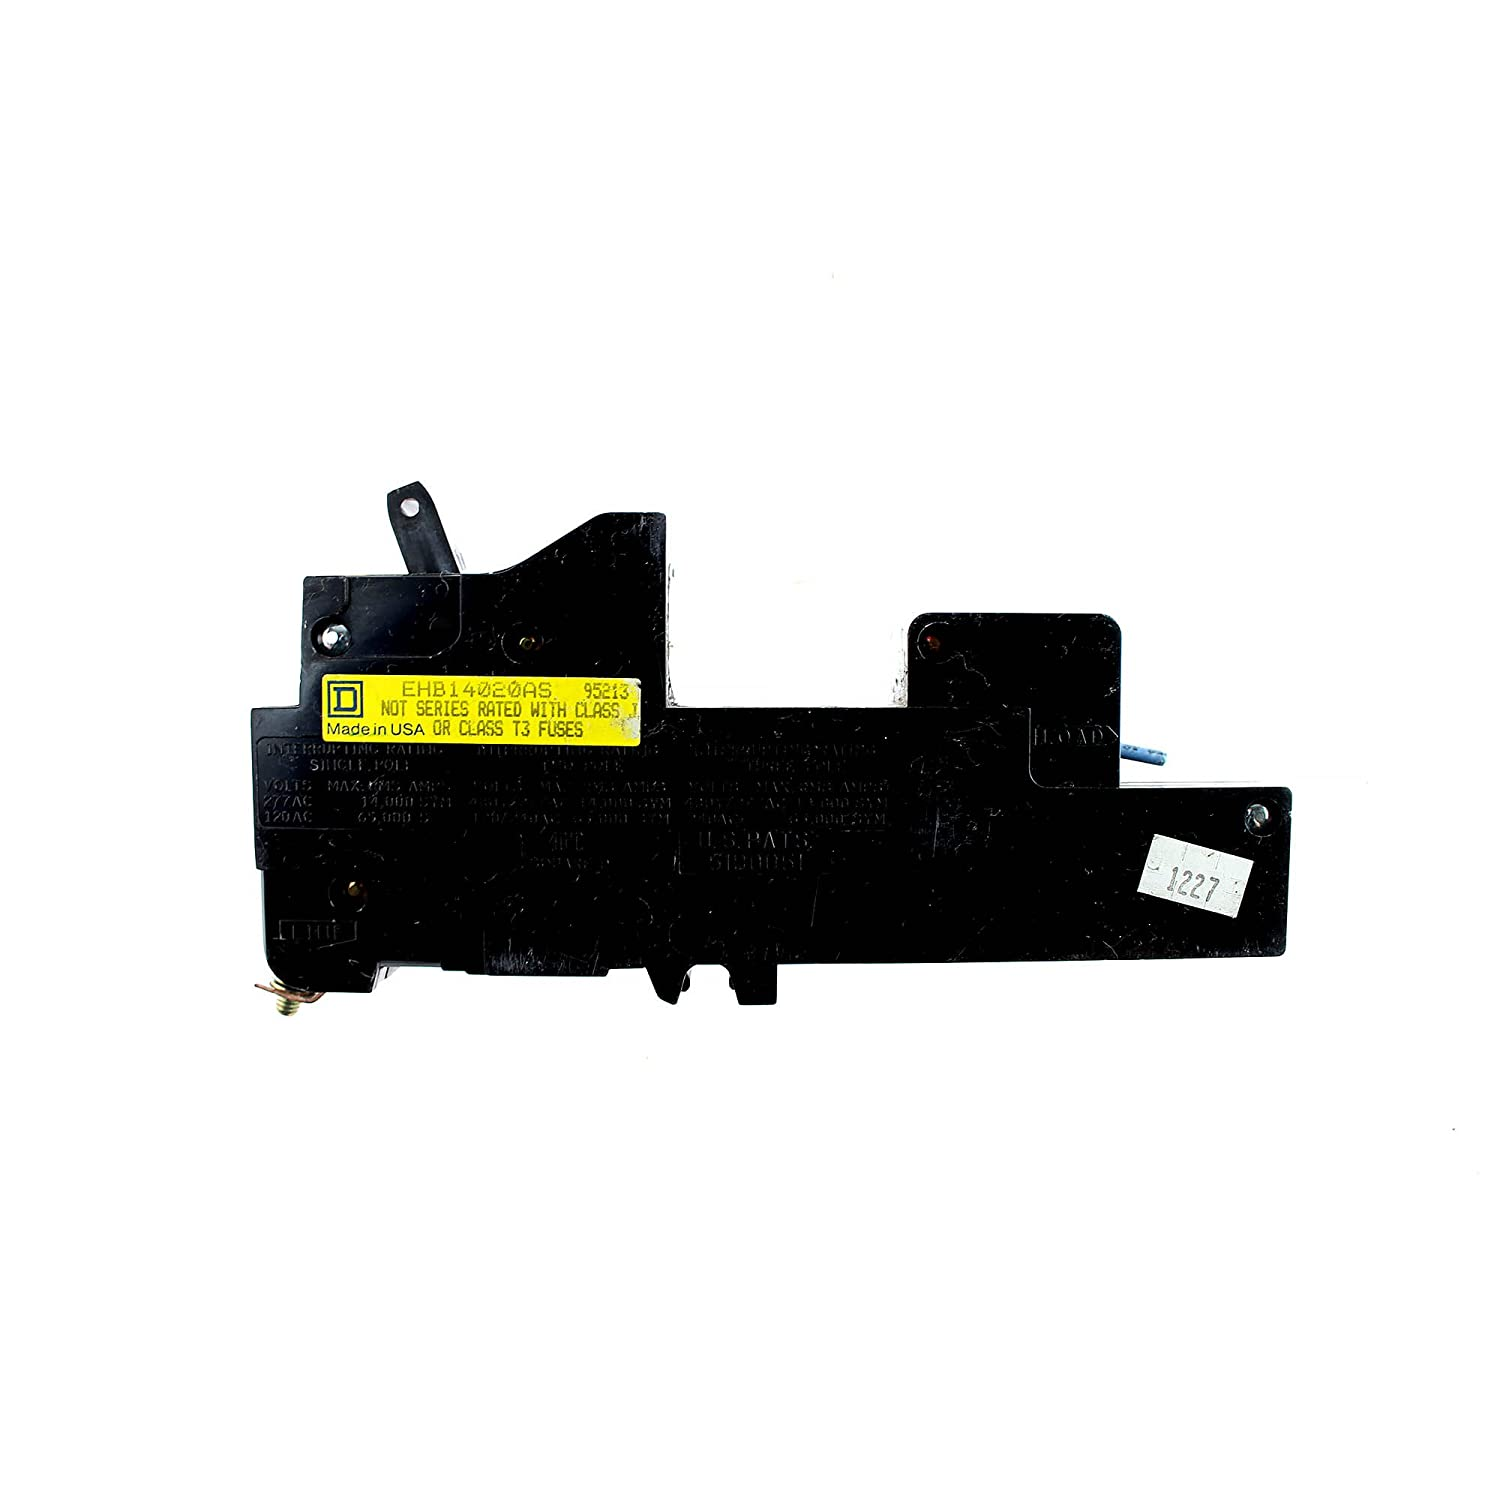 Square D Ehb14020as Remote Control Circuit Breaker 20a 1 Pole For Multiple Appliances Homemade 277v Miniature Breakers